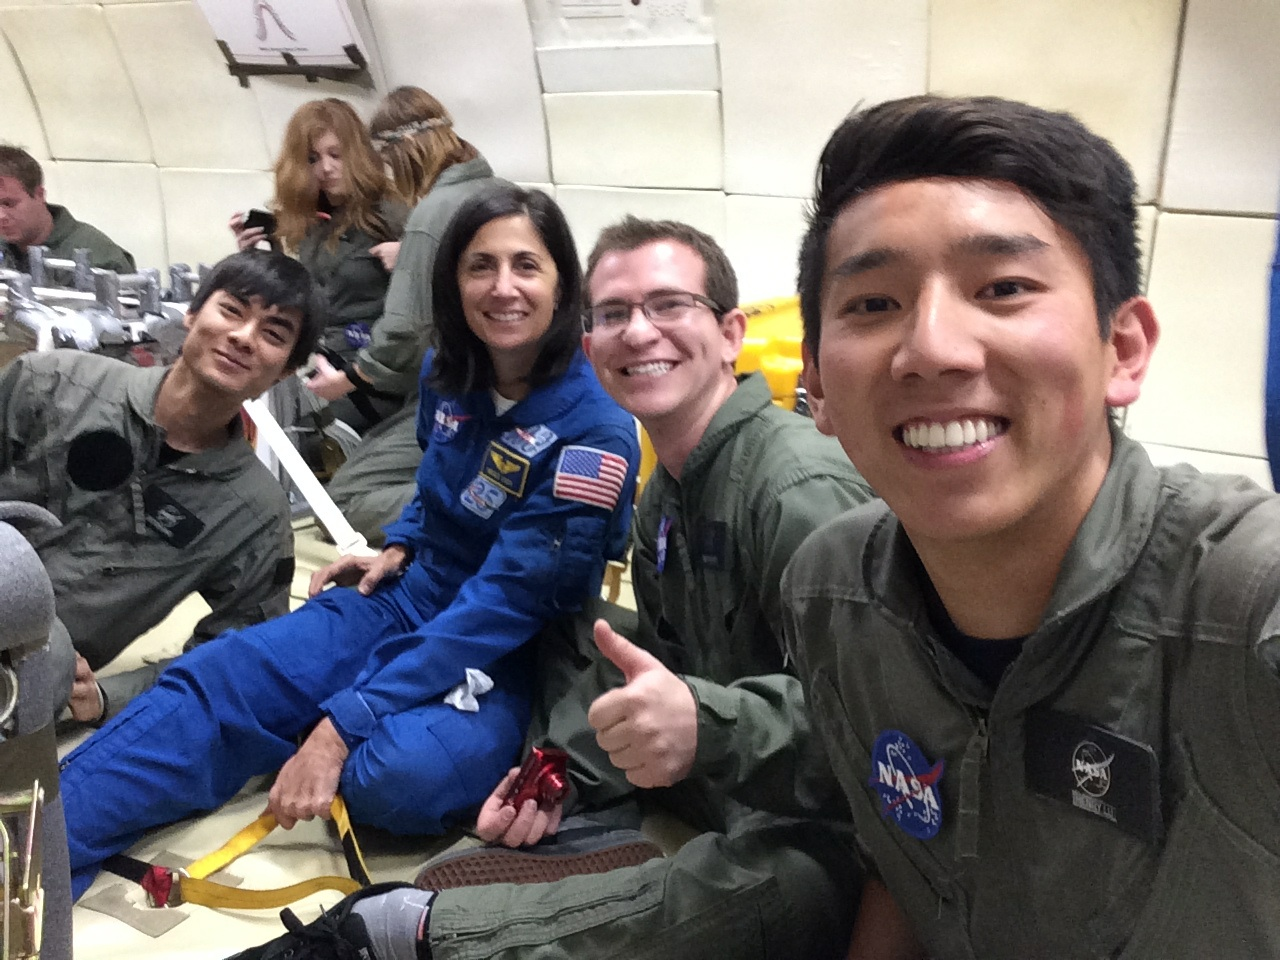 Astronaut Stott and Students Aboard Zero-Gravity Flight